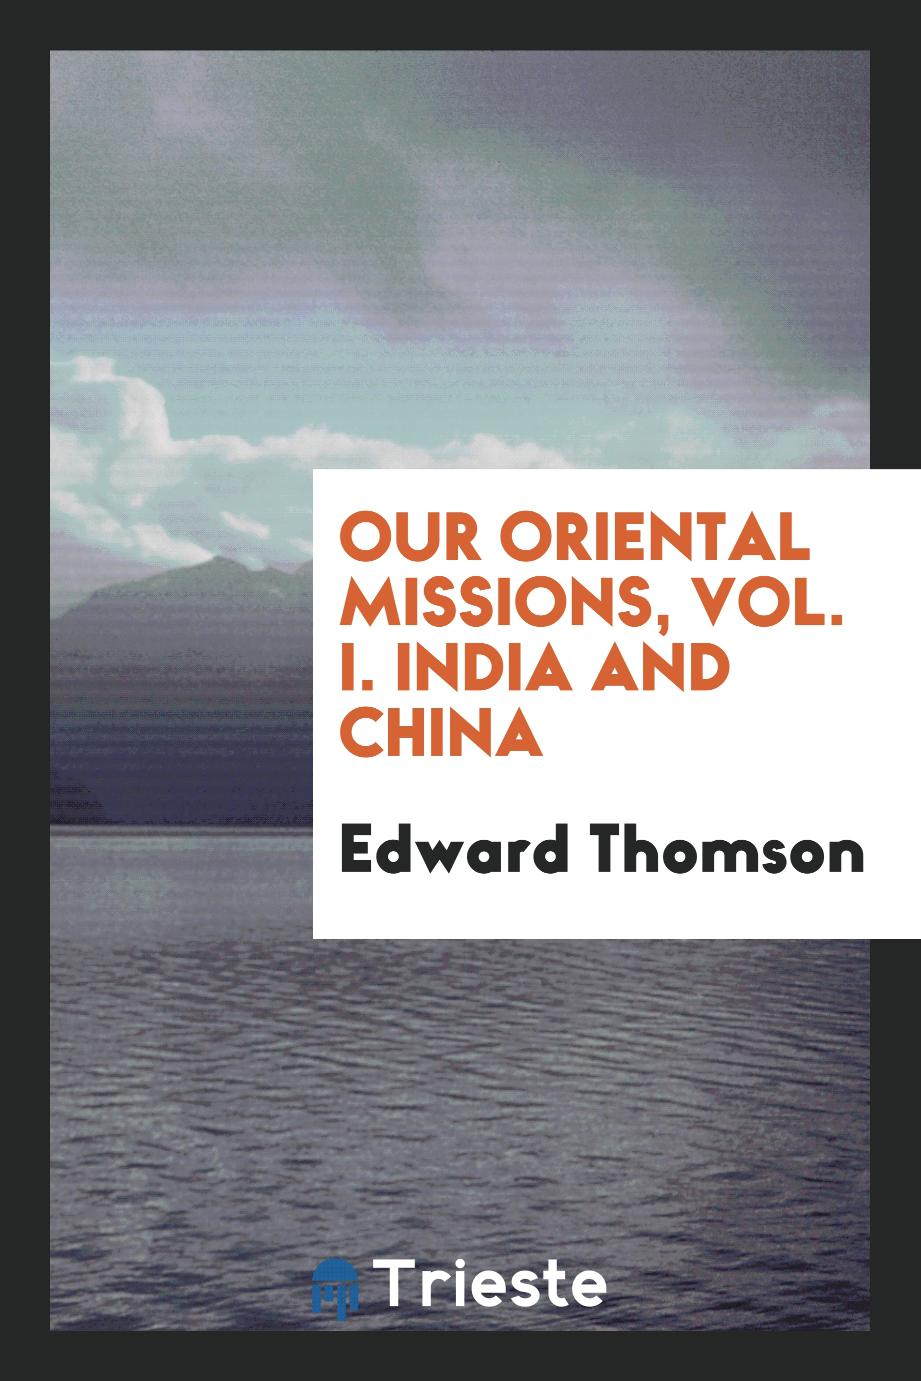 Our oriental missions, Vol. I. india and China